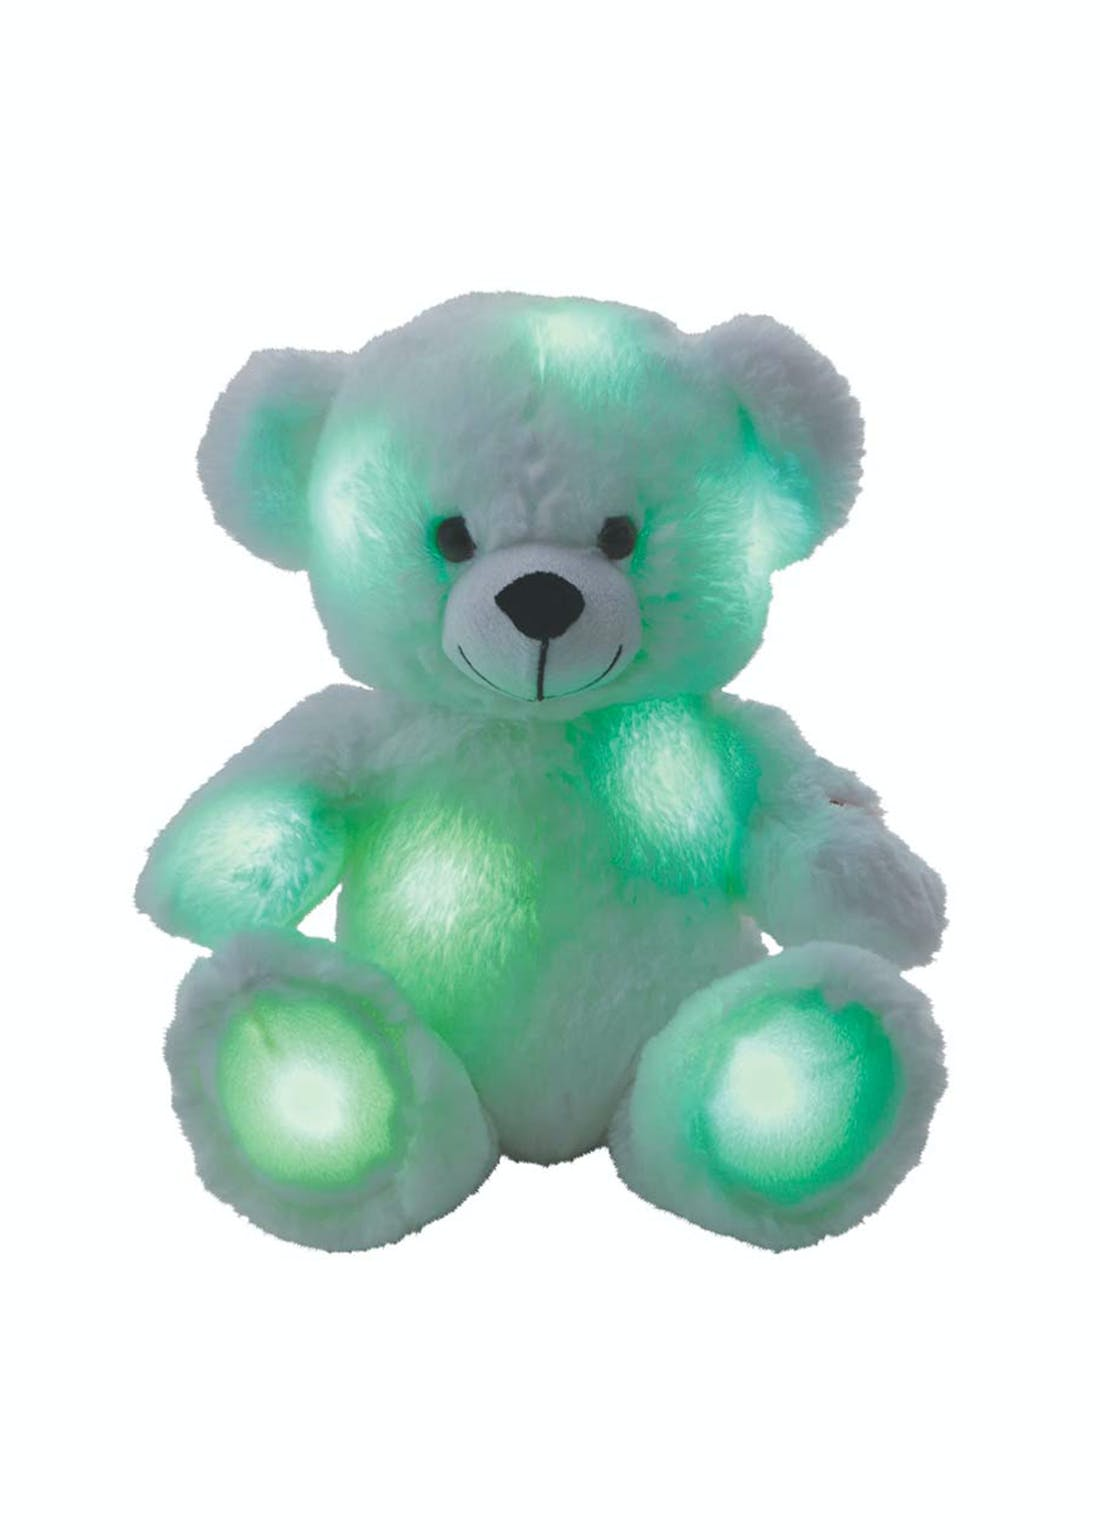 Snuggle Buddies Brilliant Light-Up Bear (30cm x 18cm x 18cm)